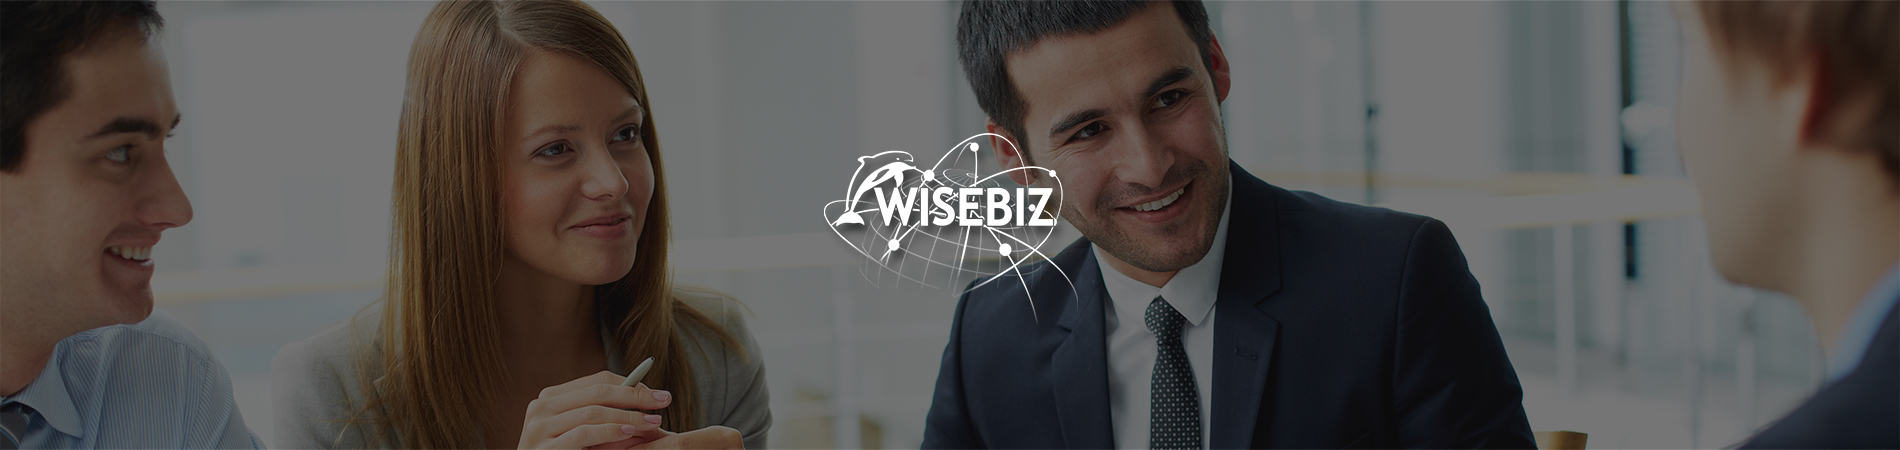 Careers_WiseBiz_Header_1900